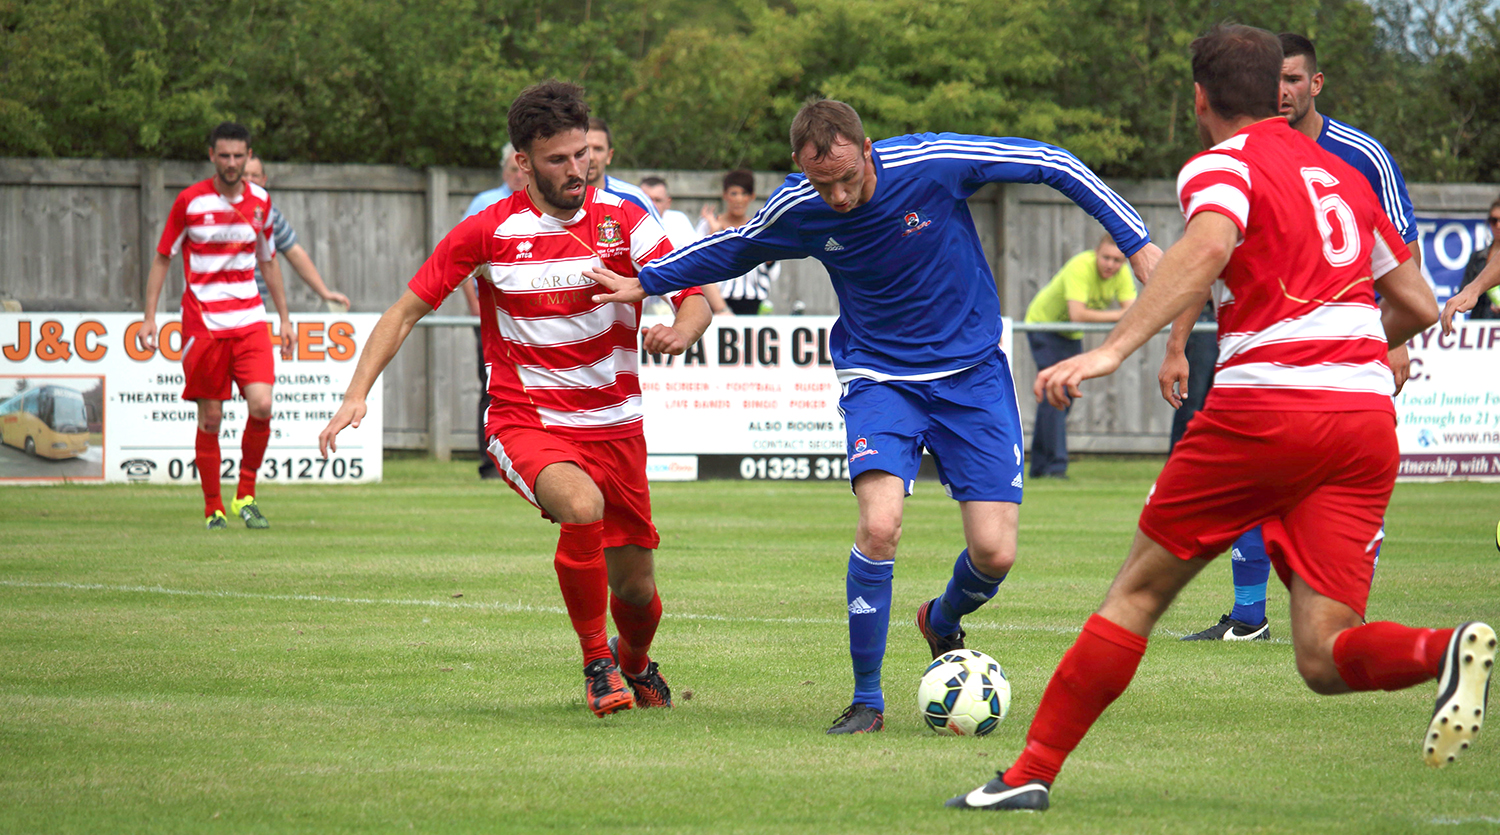 Disappointing Aycliffe Loss